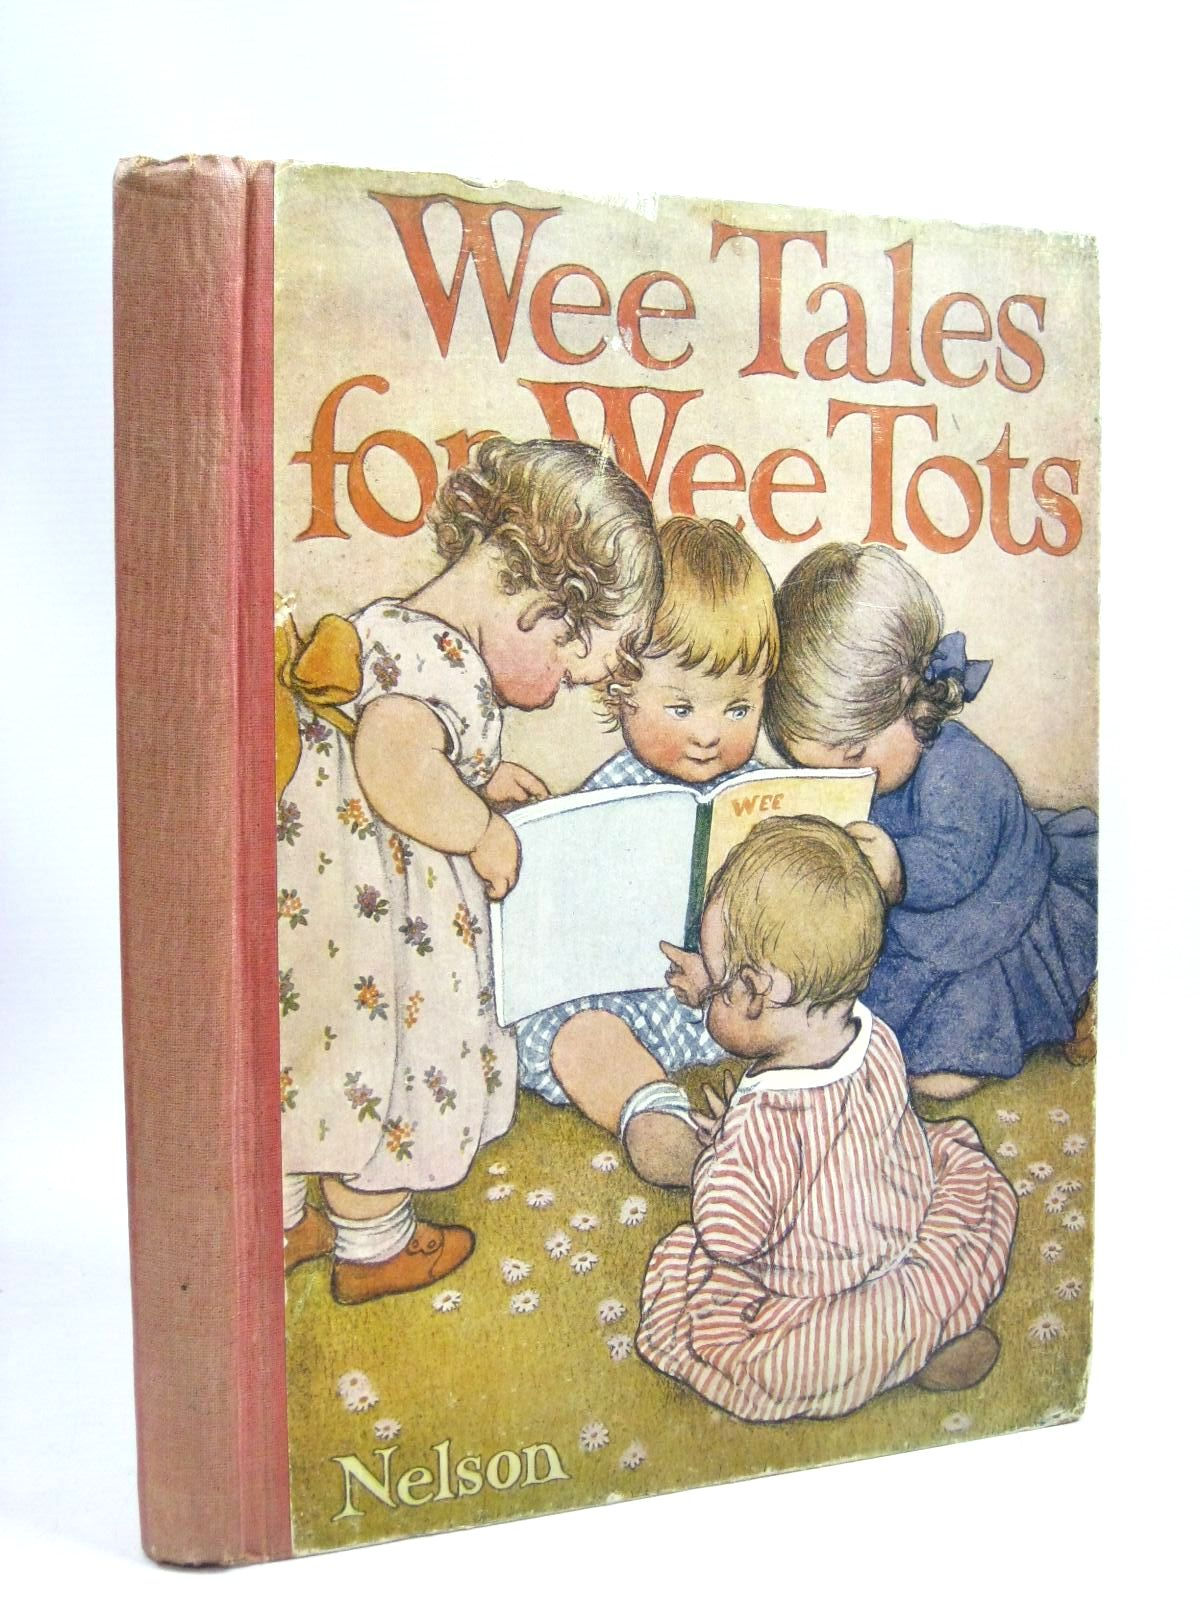 Photo of WEE TALES FOR WEE TOTS published by Thomas Nelson and Sons Ltd. (STOCK CODE: 1505979)  for sale by Stella & Rose's Books